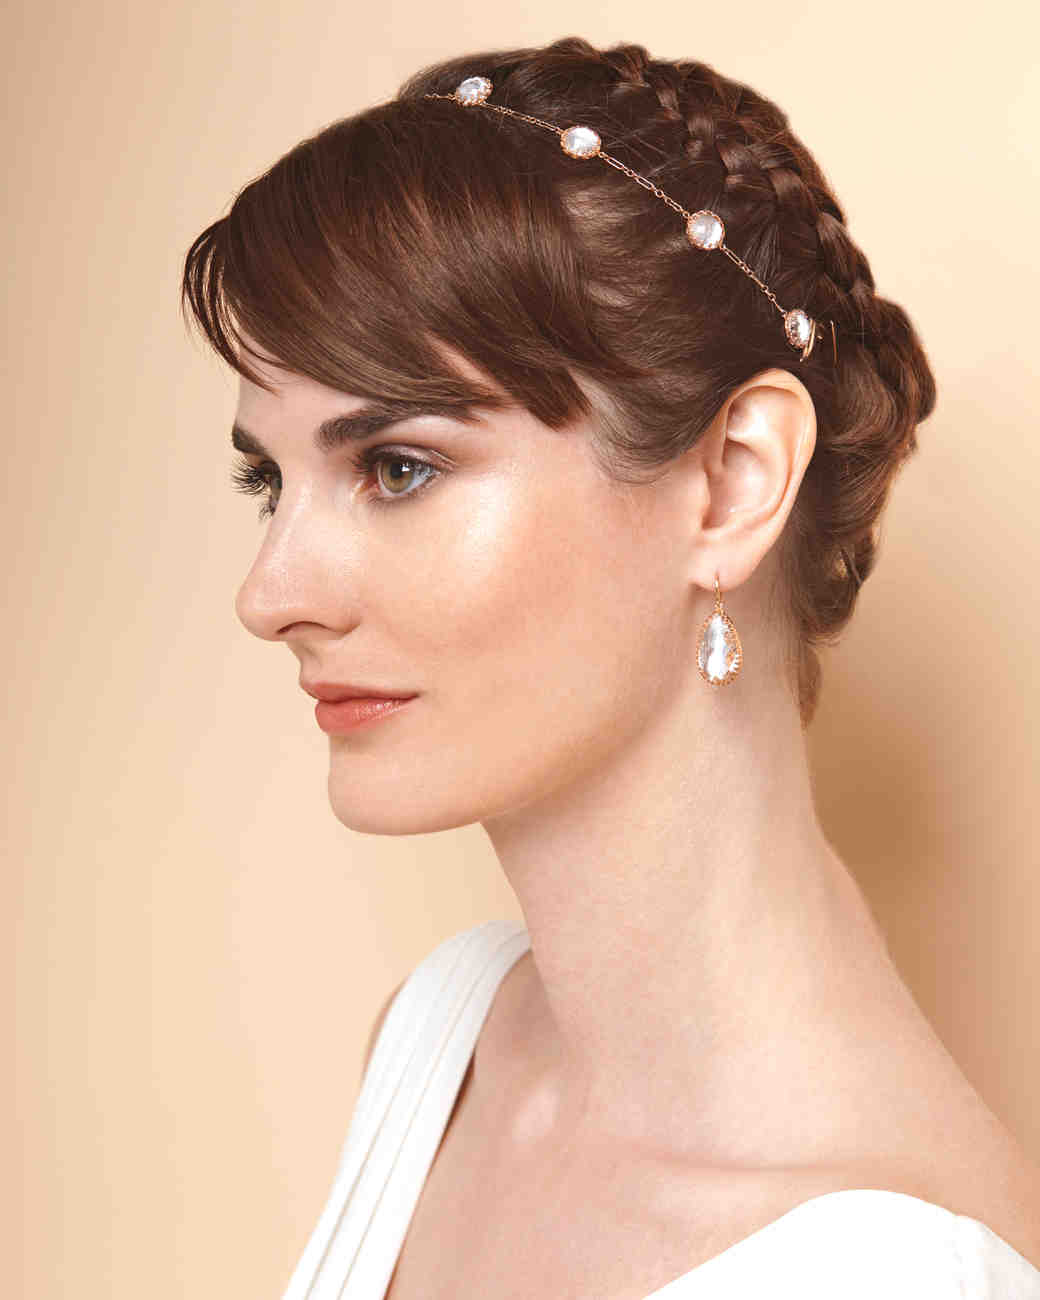 Medium Length Wedding Hairstyles: 4 Ways To Wear A Short Hairstyle On Your Wedding Day